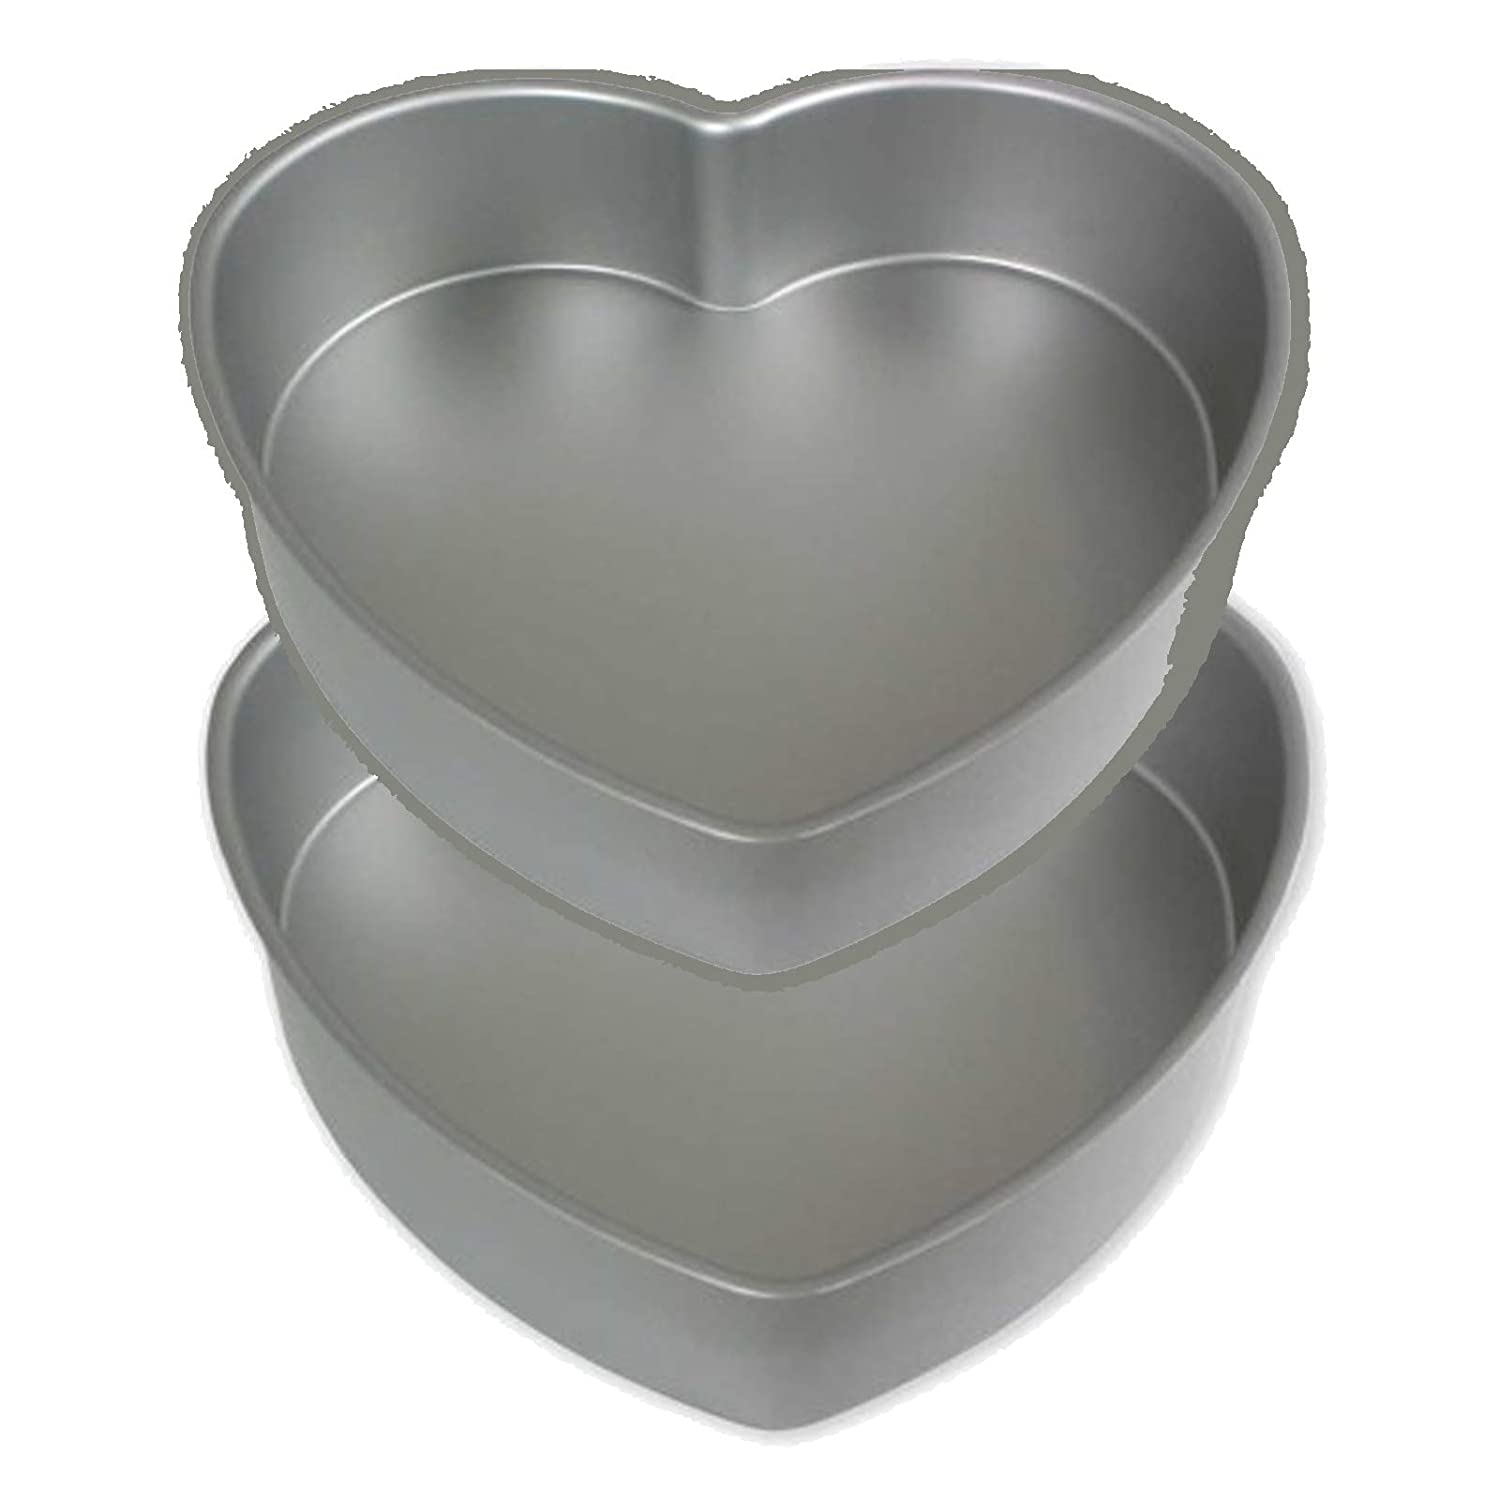 set of 2 set of two same size Heart shape anodises aluminium Baking Tins 6 inch,wide and 2 inch deep Set of 2 PME HRT 6x 2 deep